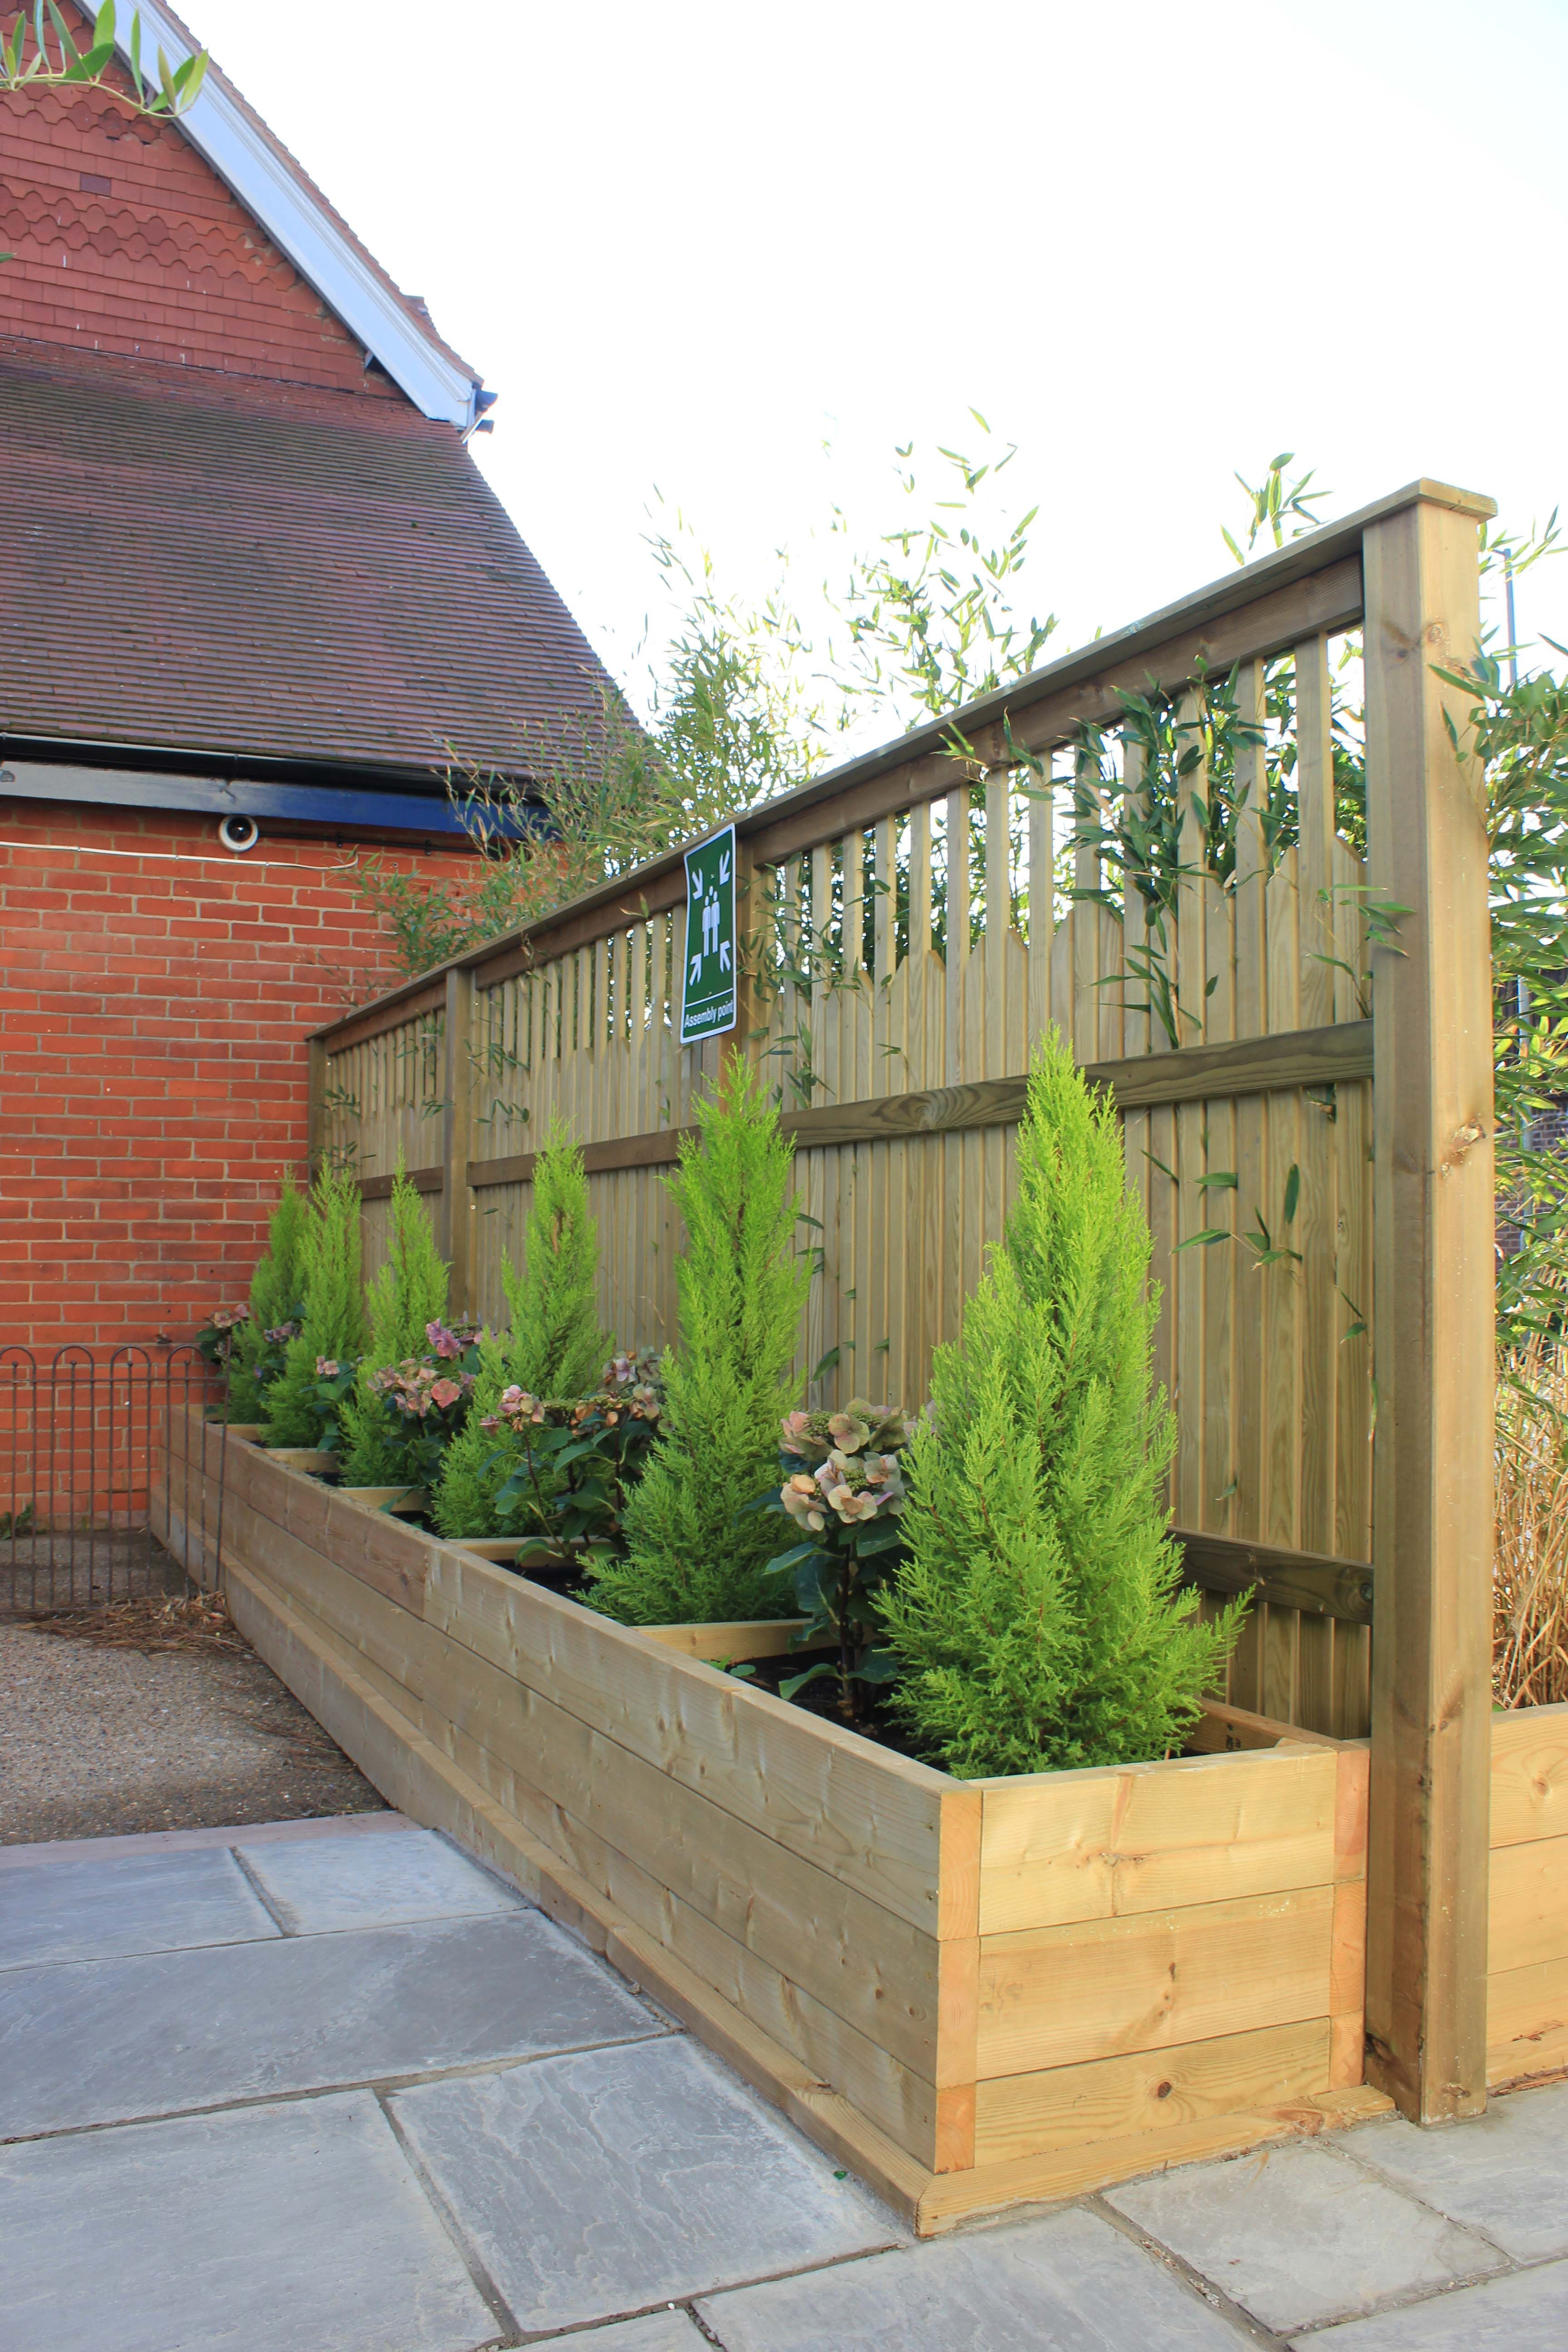 paliframe fence panel garden fence panels fence design on inexpensive way to build a wood privacy fence diy guide for 2020 id=49165